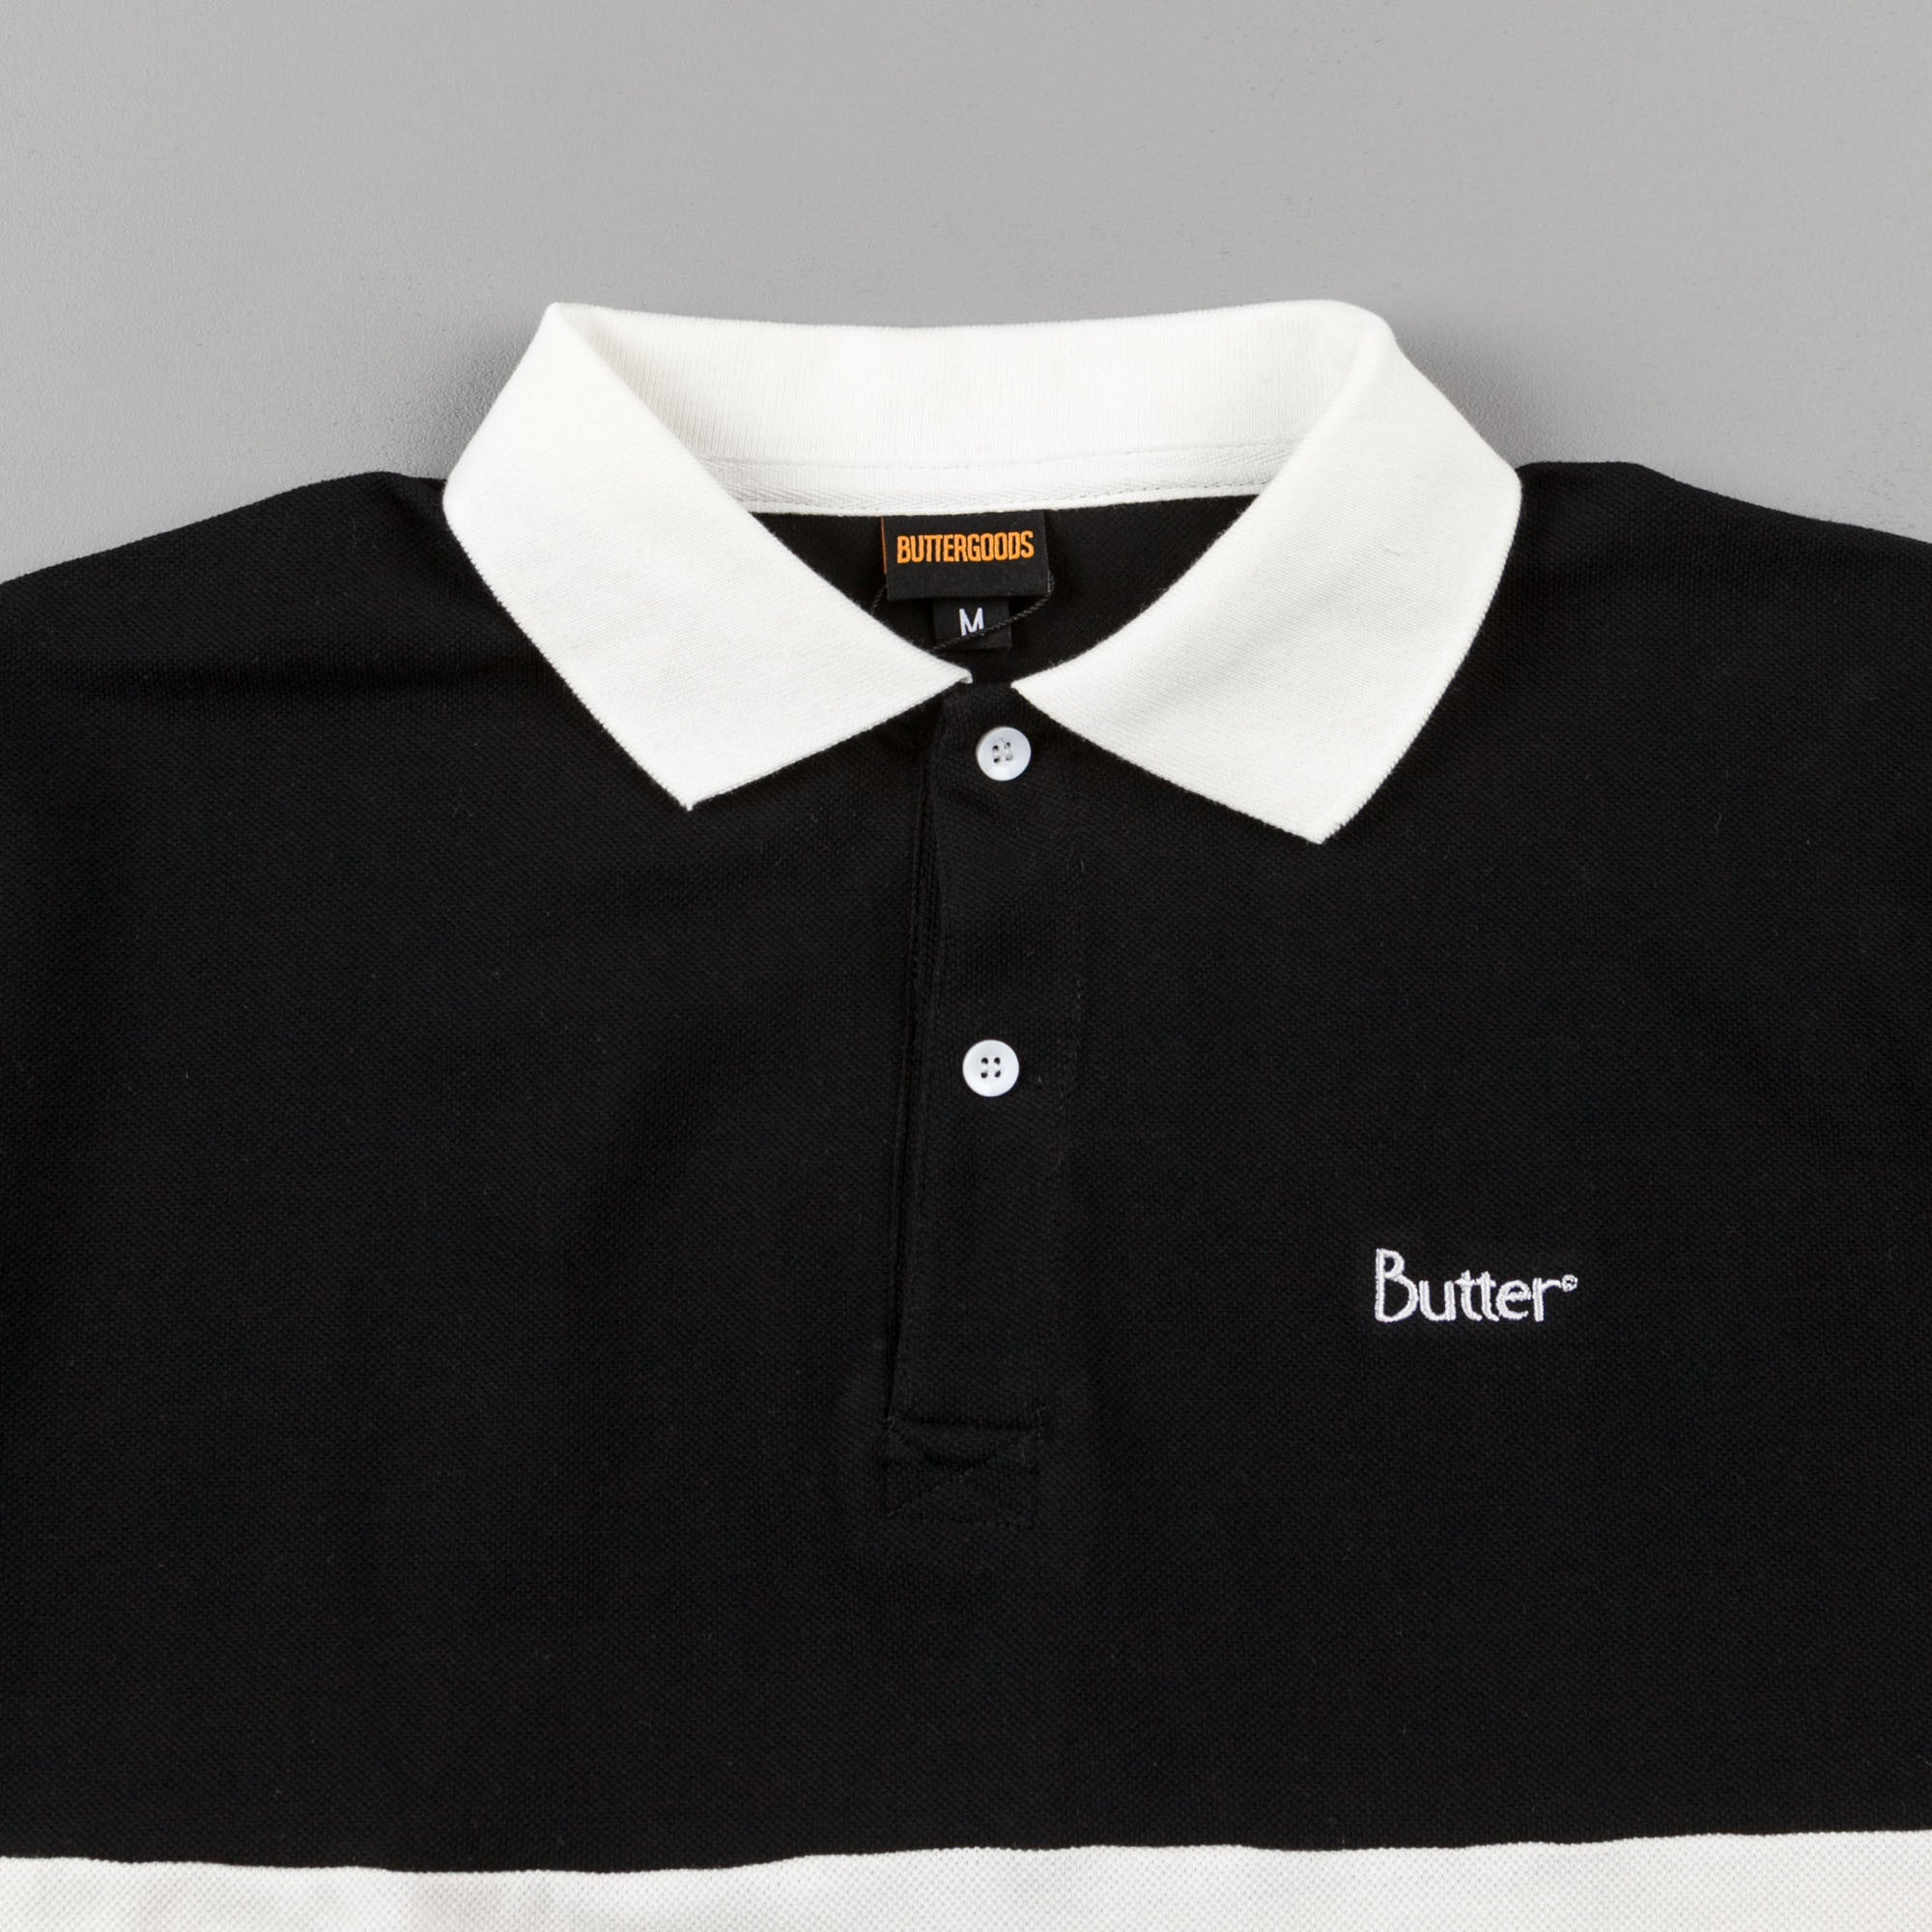 Butter Goods Court Polo Shirt - Black / White / Mint